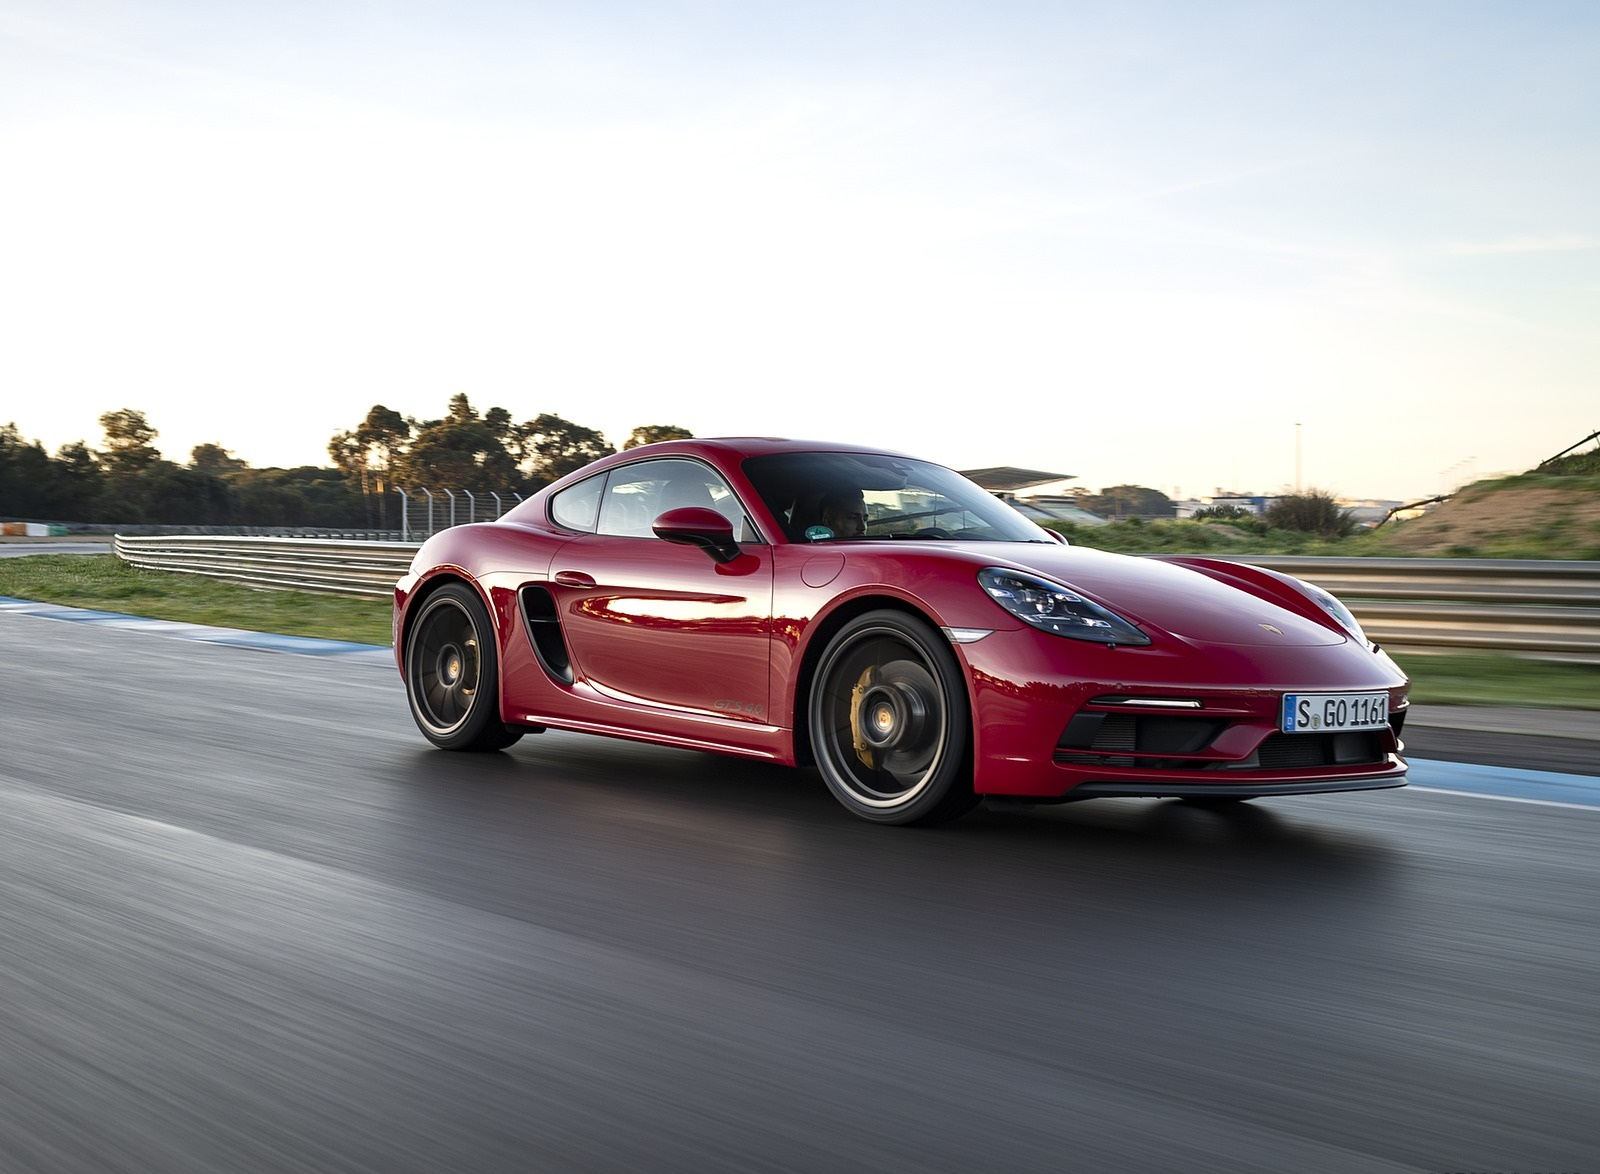 2020 Porsche 718 Cayman GTS 4.0 (Color: Carmine Red) Front Three-Quarter Wallpapers (1)